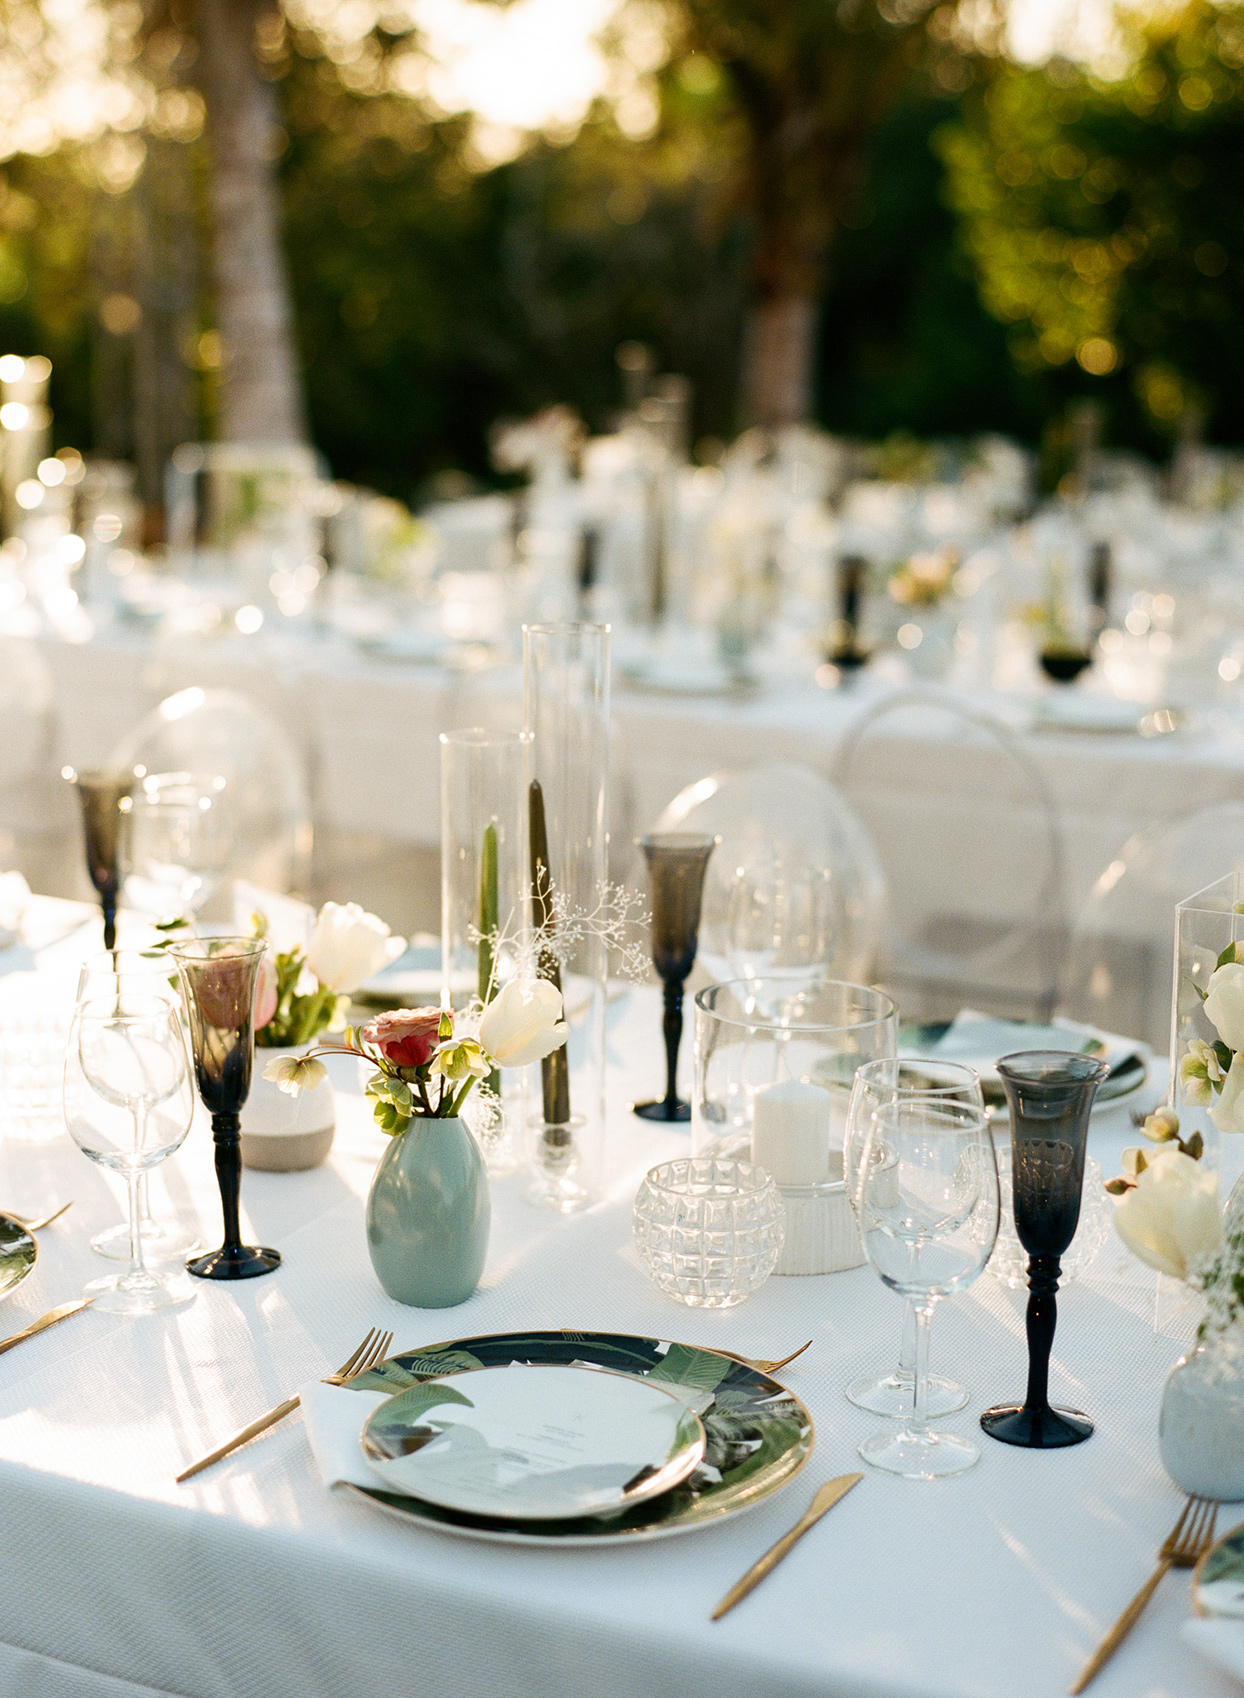 Wedding centerpieces of taper and pillar candles in white, black, and green